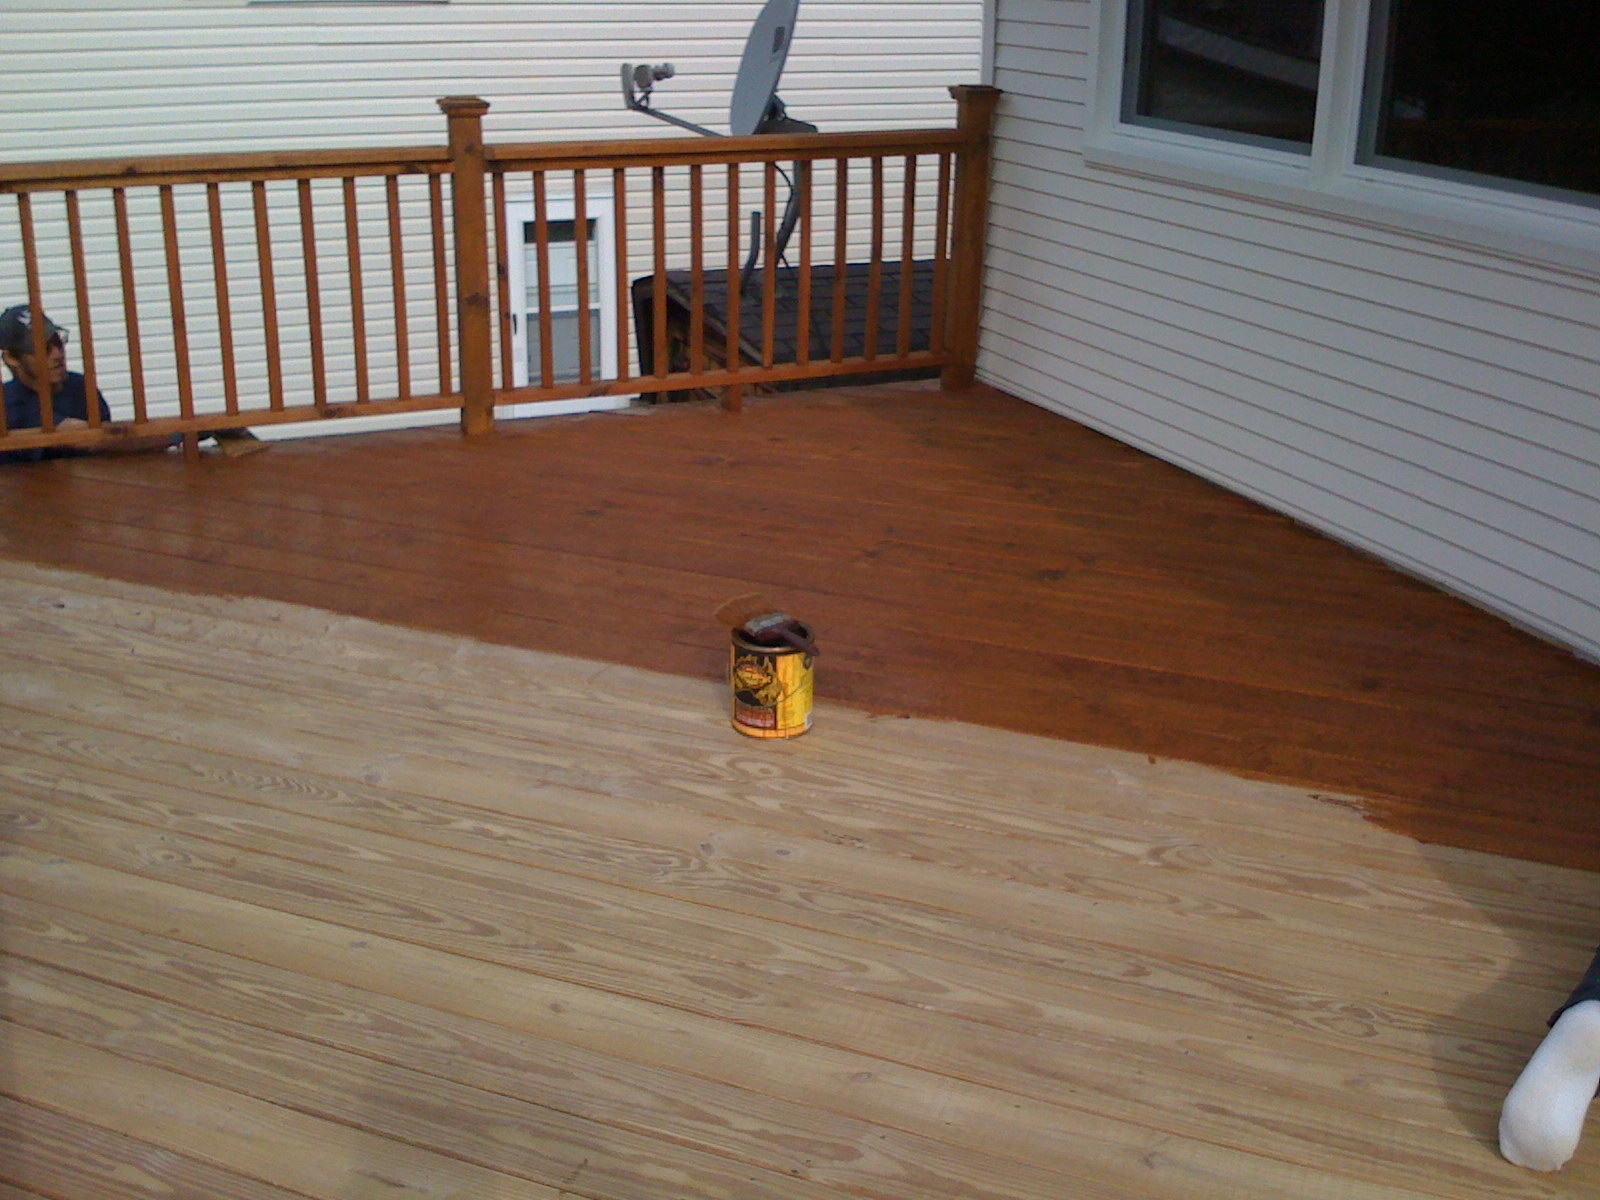 Power washing a deck - Deck Staining Chicago